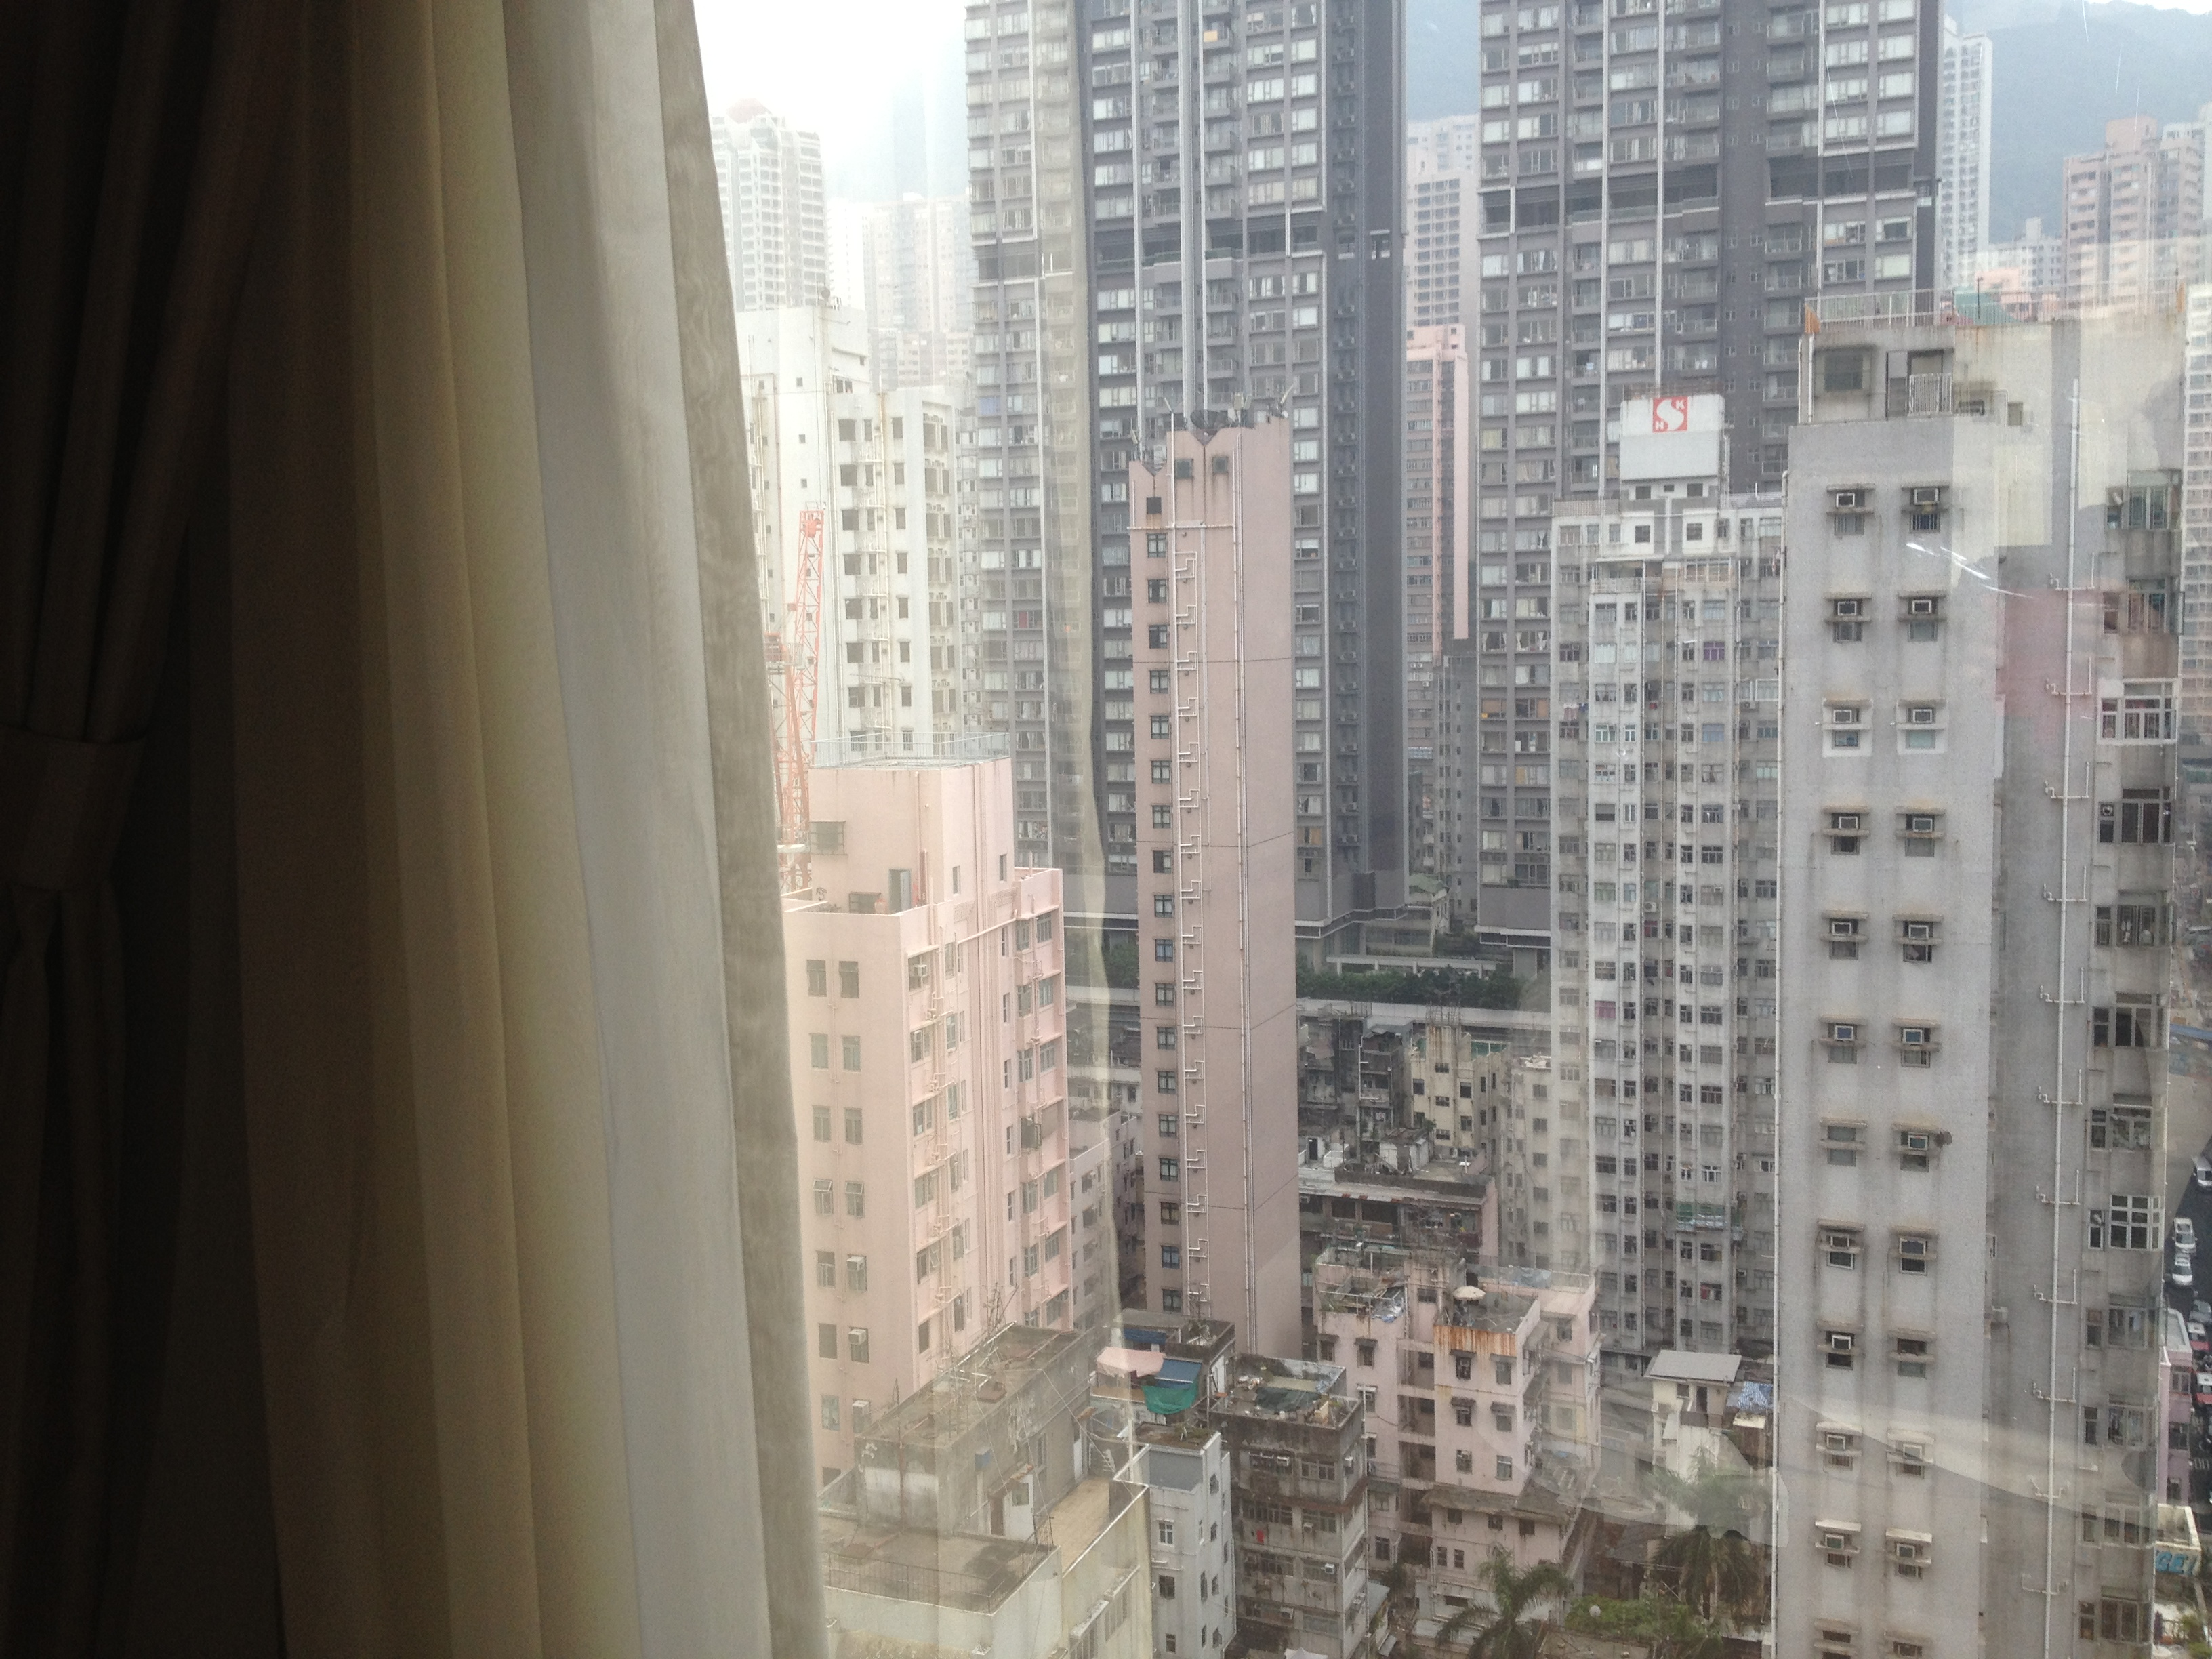 view of downtown hong kong from window